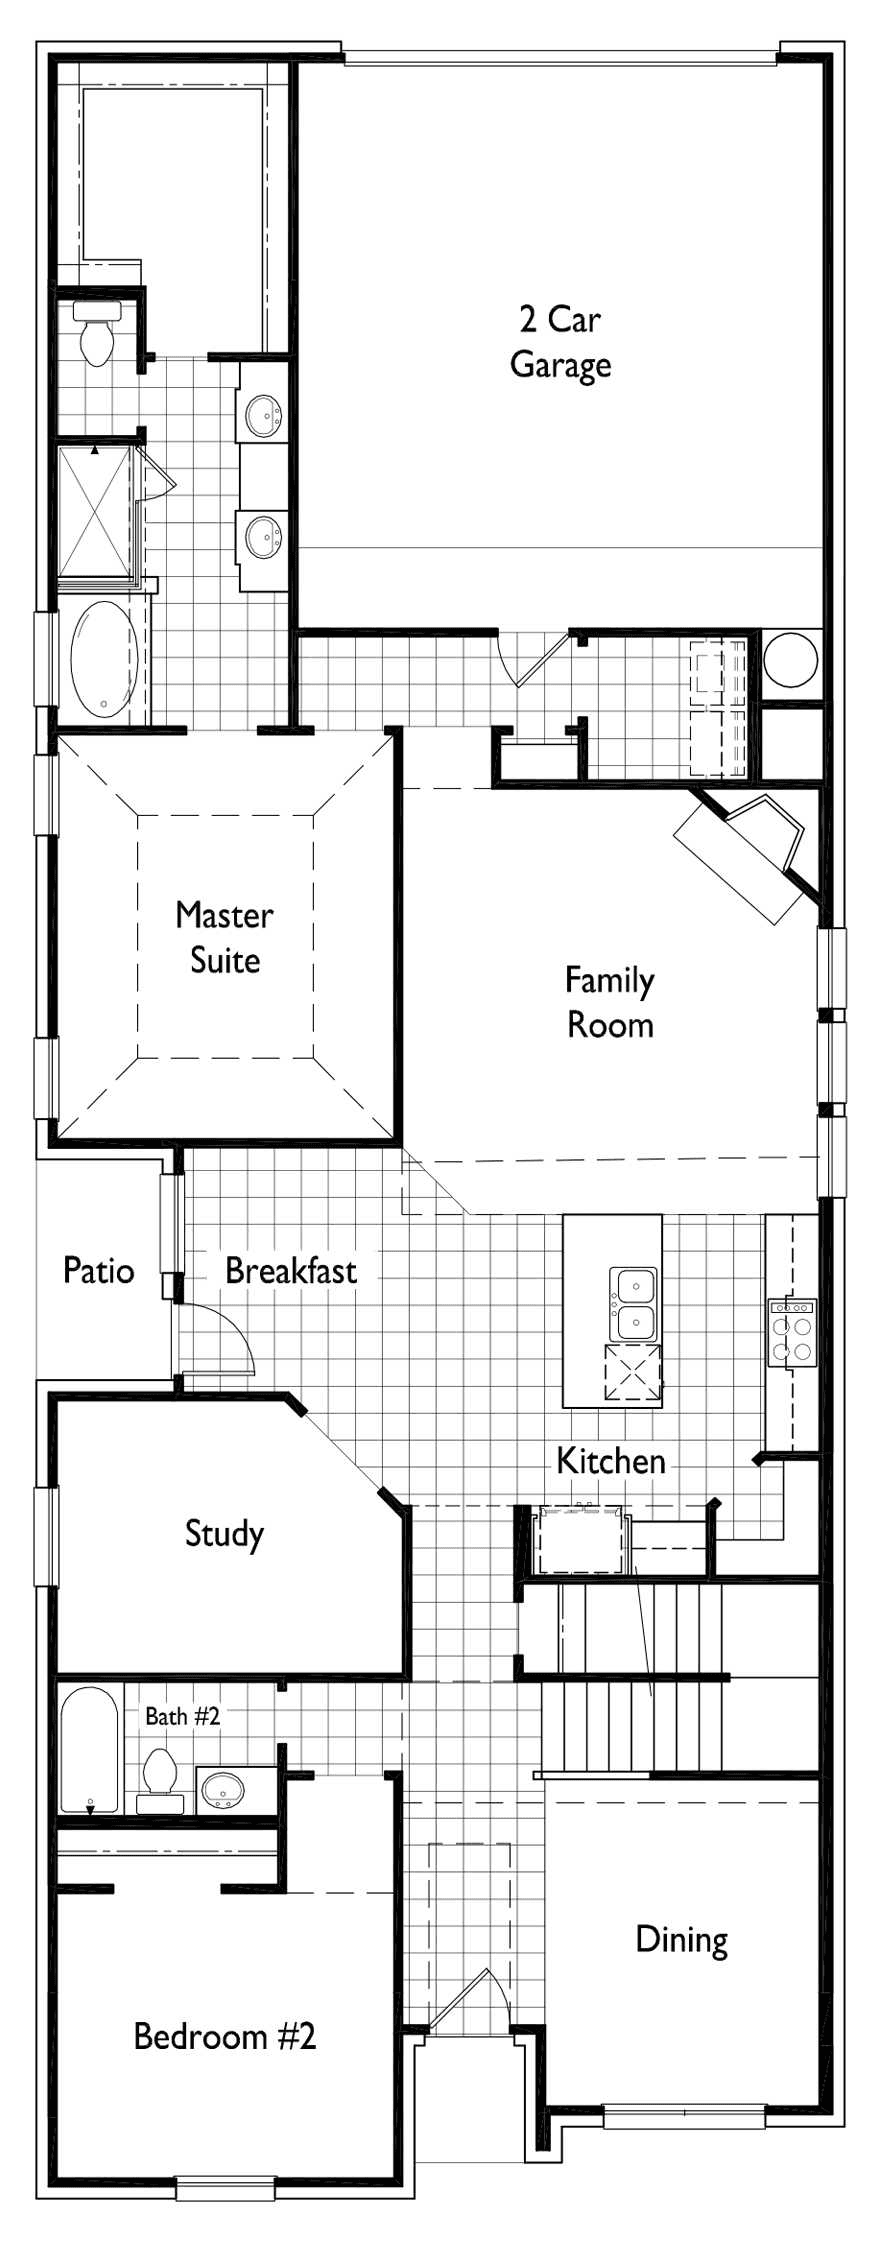 Plan 308 by Highland Homes 6